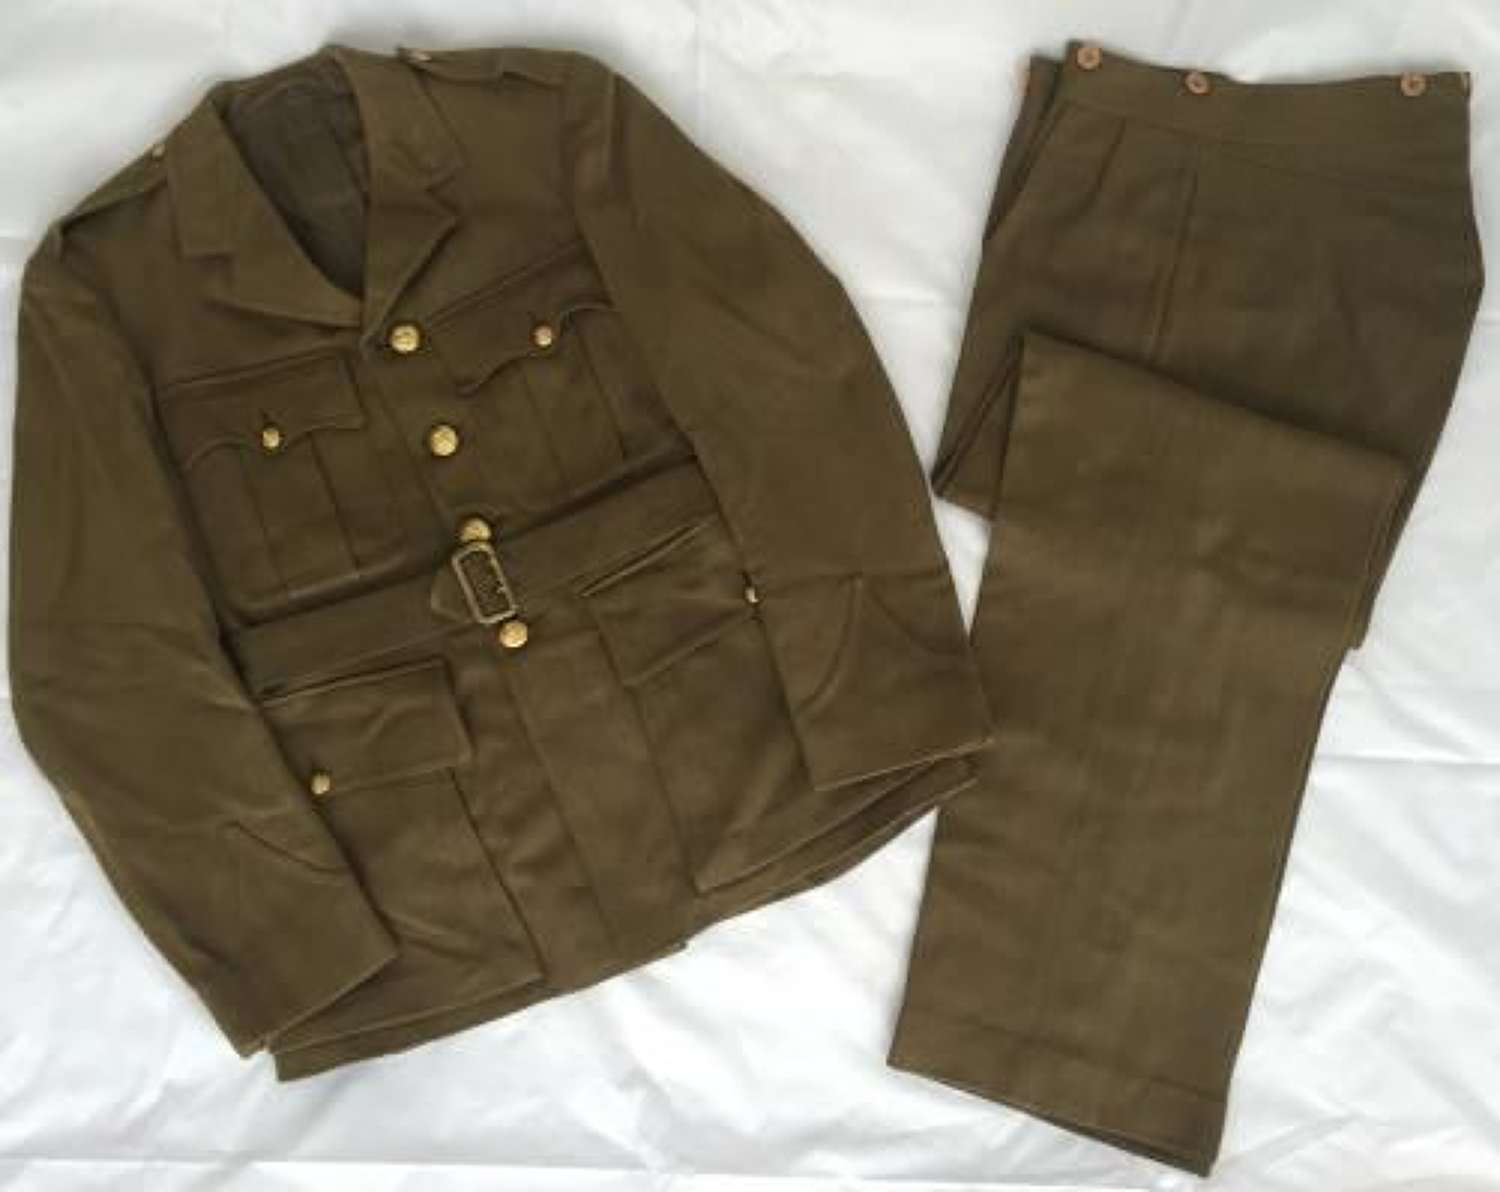 Original Wartime Royal Artillery Officers Service Dress Jacket and Trousers